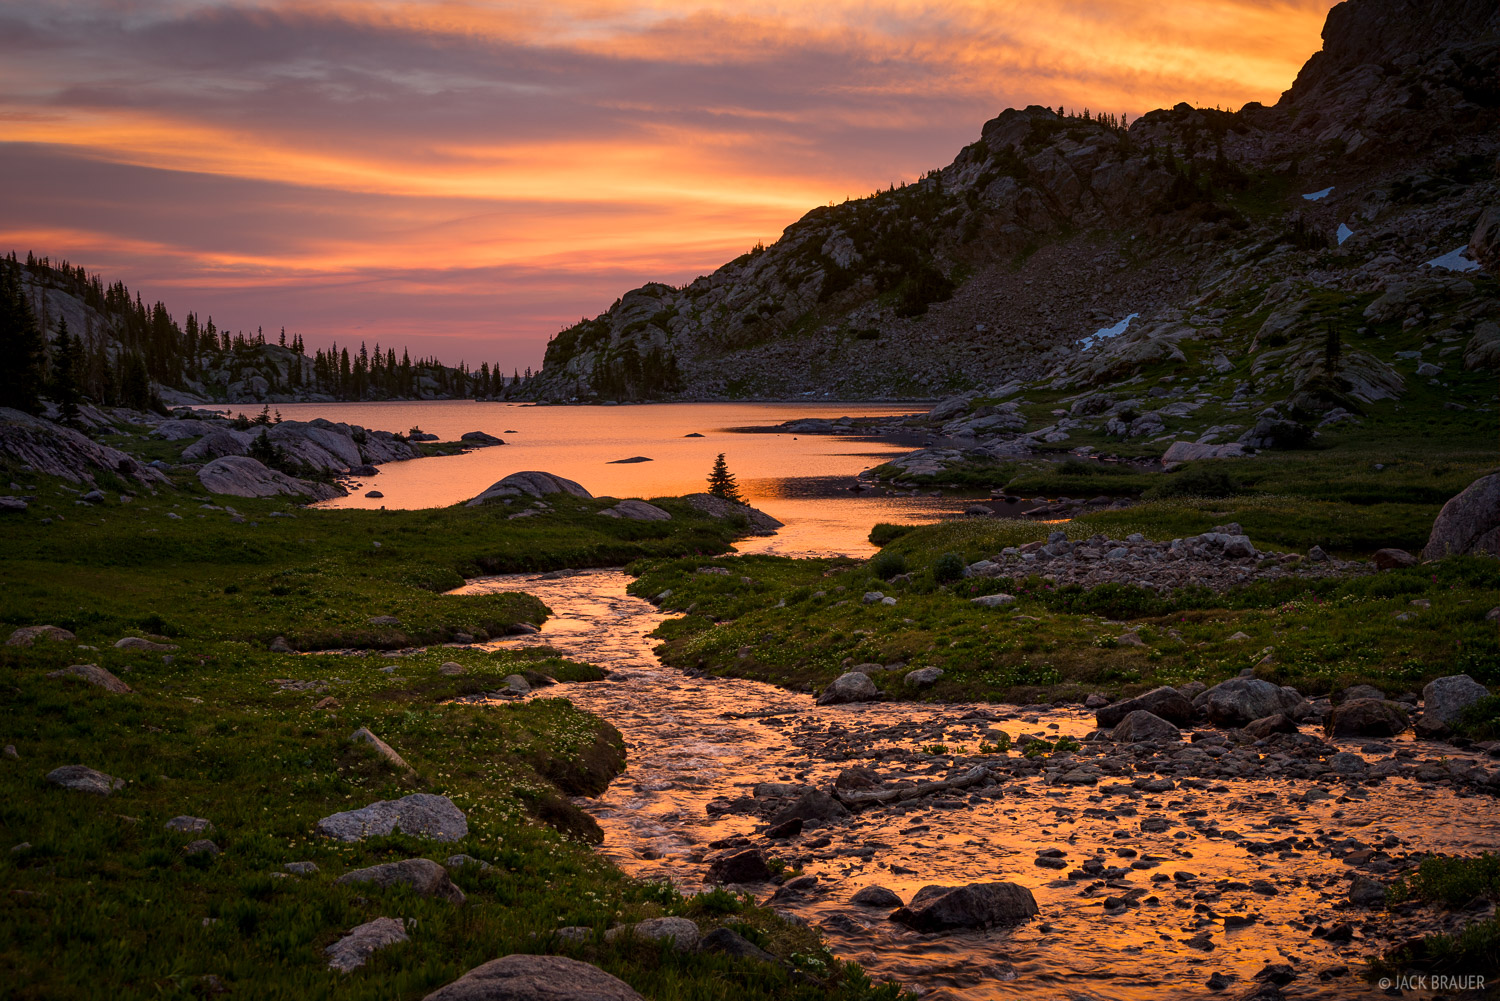 A brilliant sunrise reflects in an alpine stream and lake.